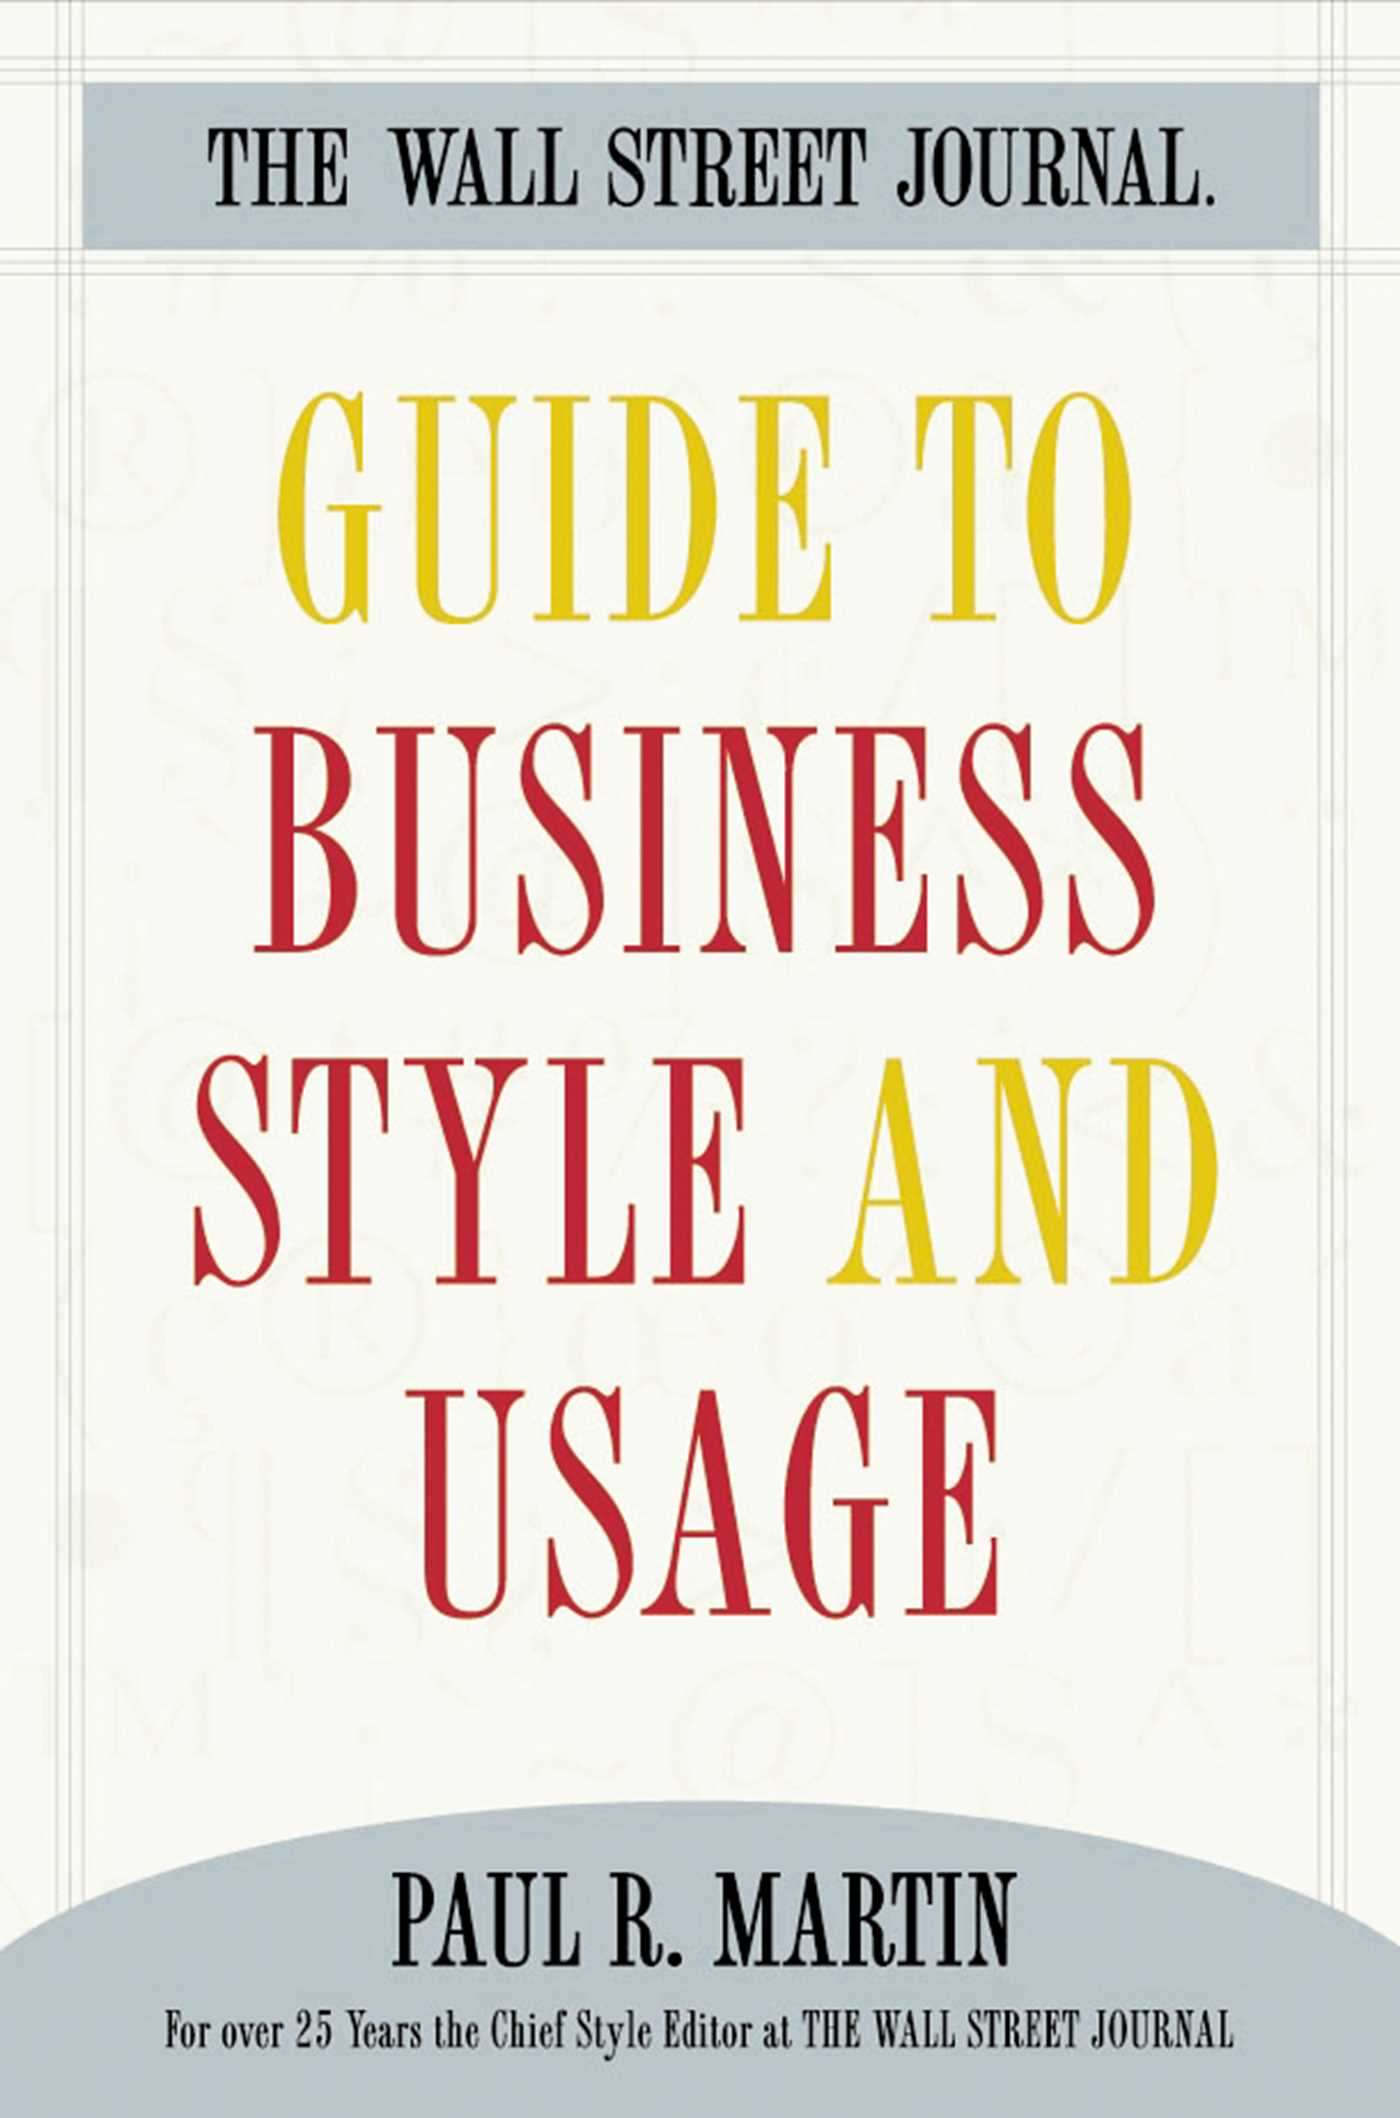 The wall street journal guide to business style and us 9781439122693 hr